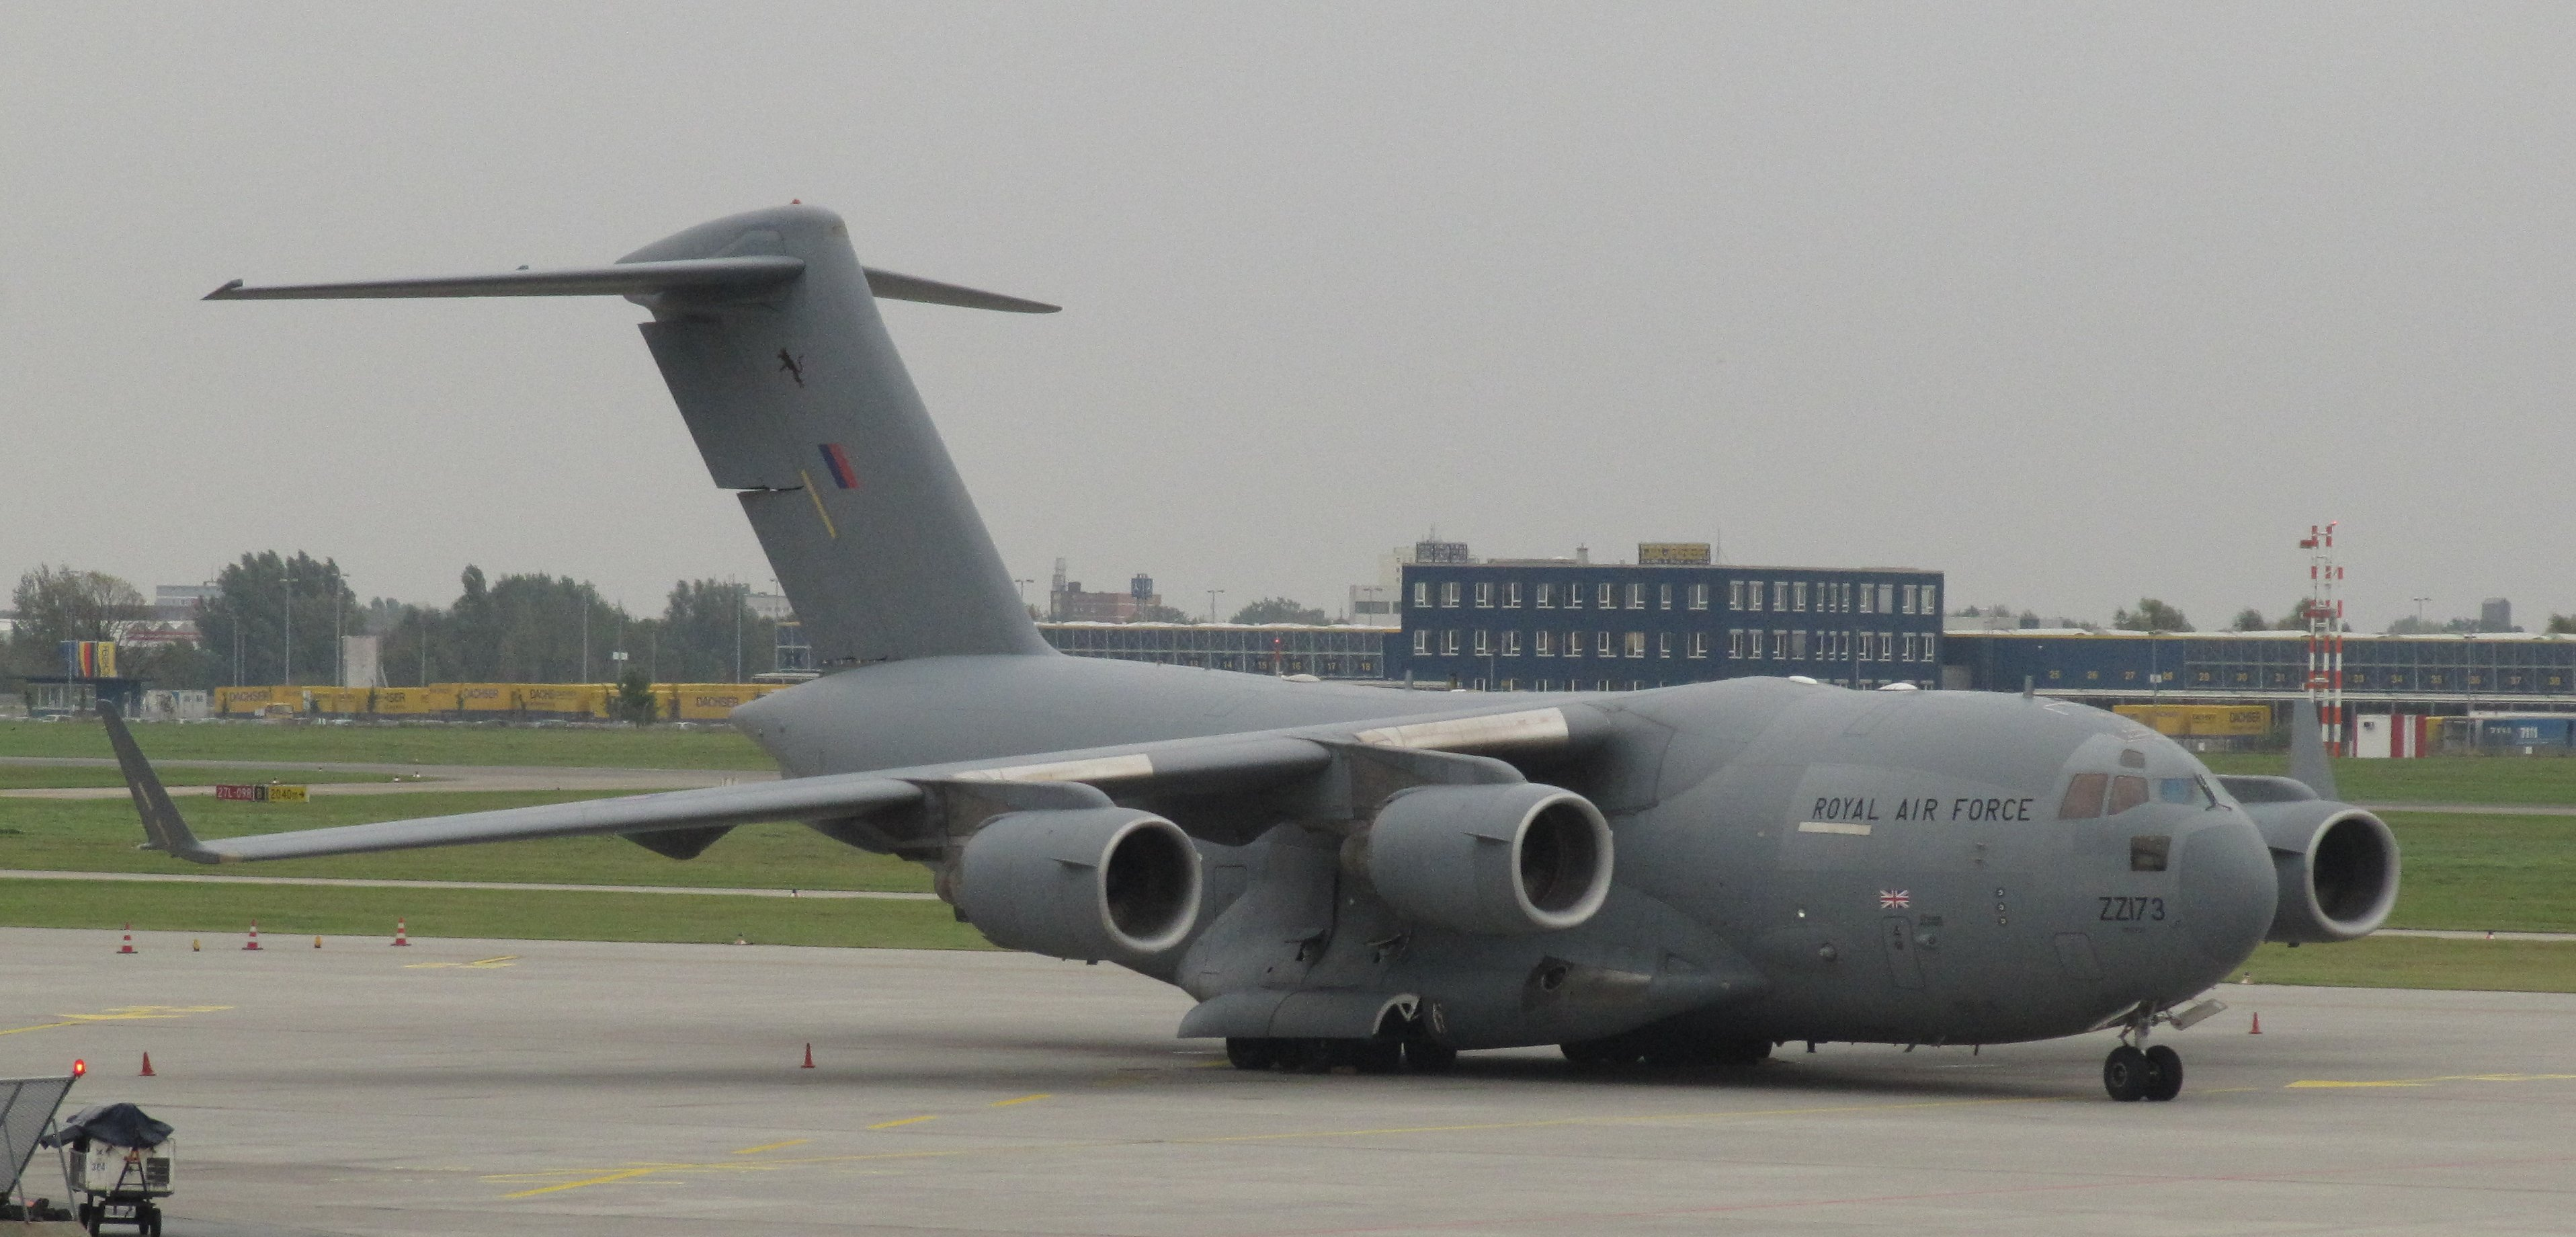 117 Globemaster ZZ173 Royal Air Force HAJ 10/10/11 | Flickr - Photo ...